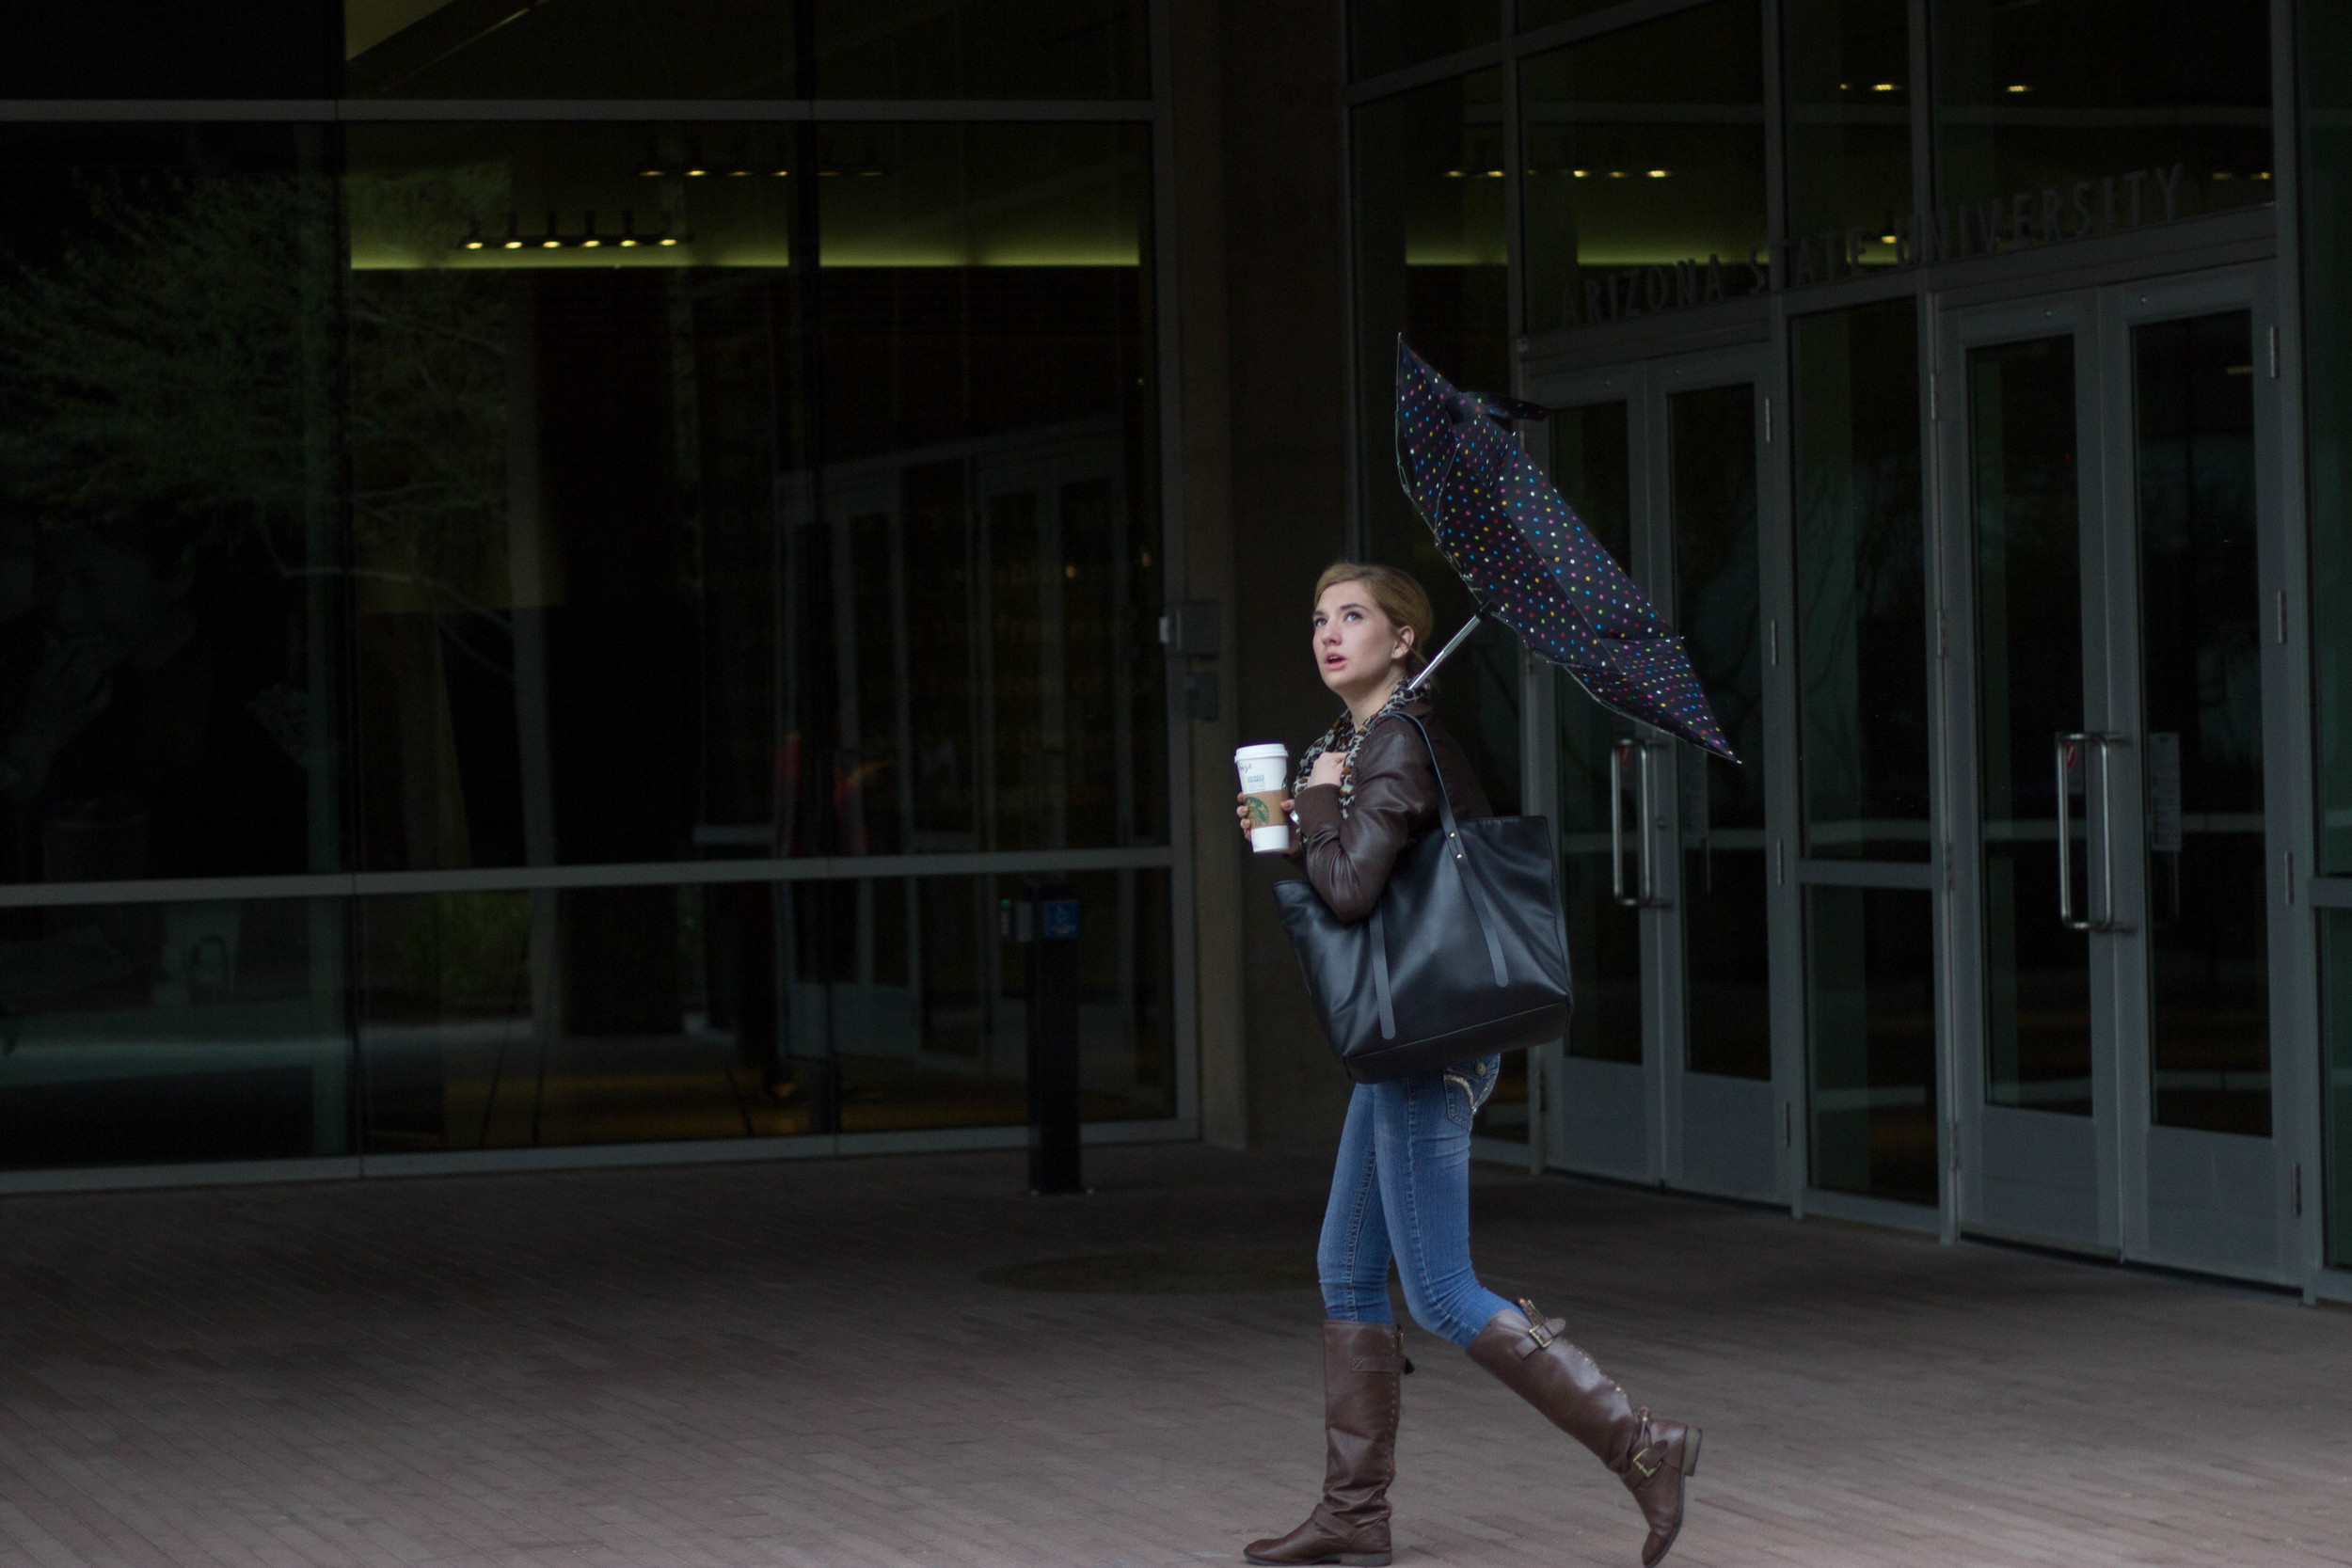 A Cronkite student gets caught in the rain Monday morning in Phoenix, Ariz. (Photo by Gretchen Burnton)